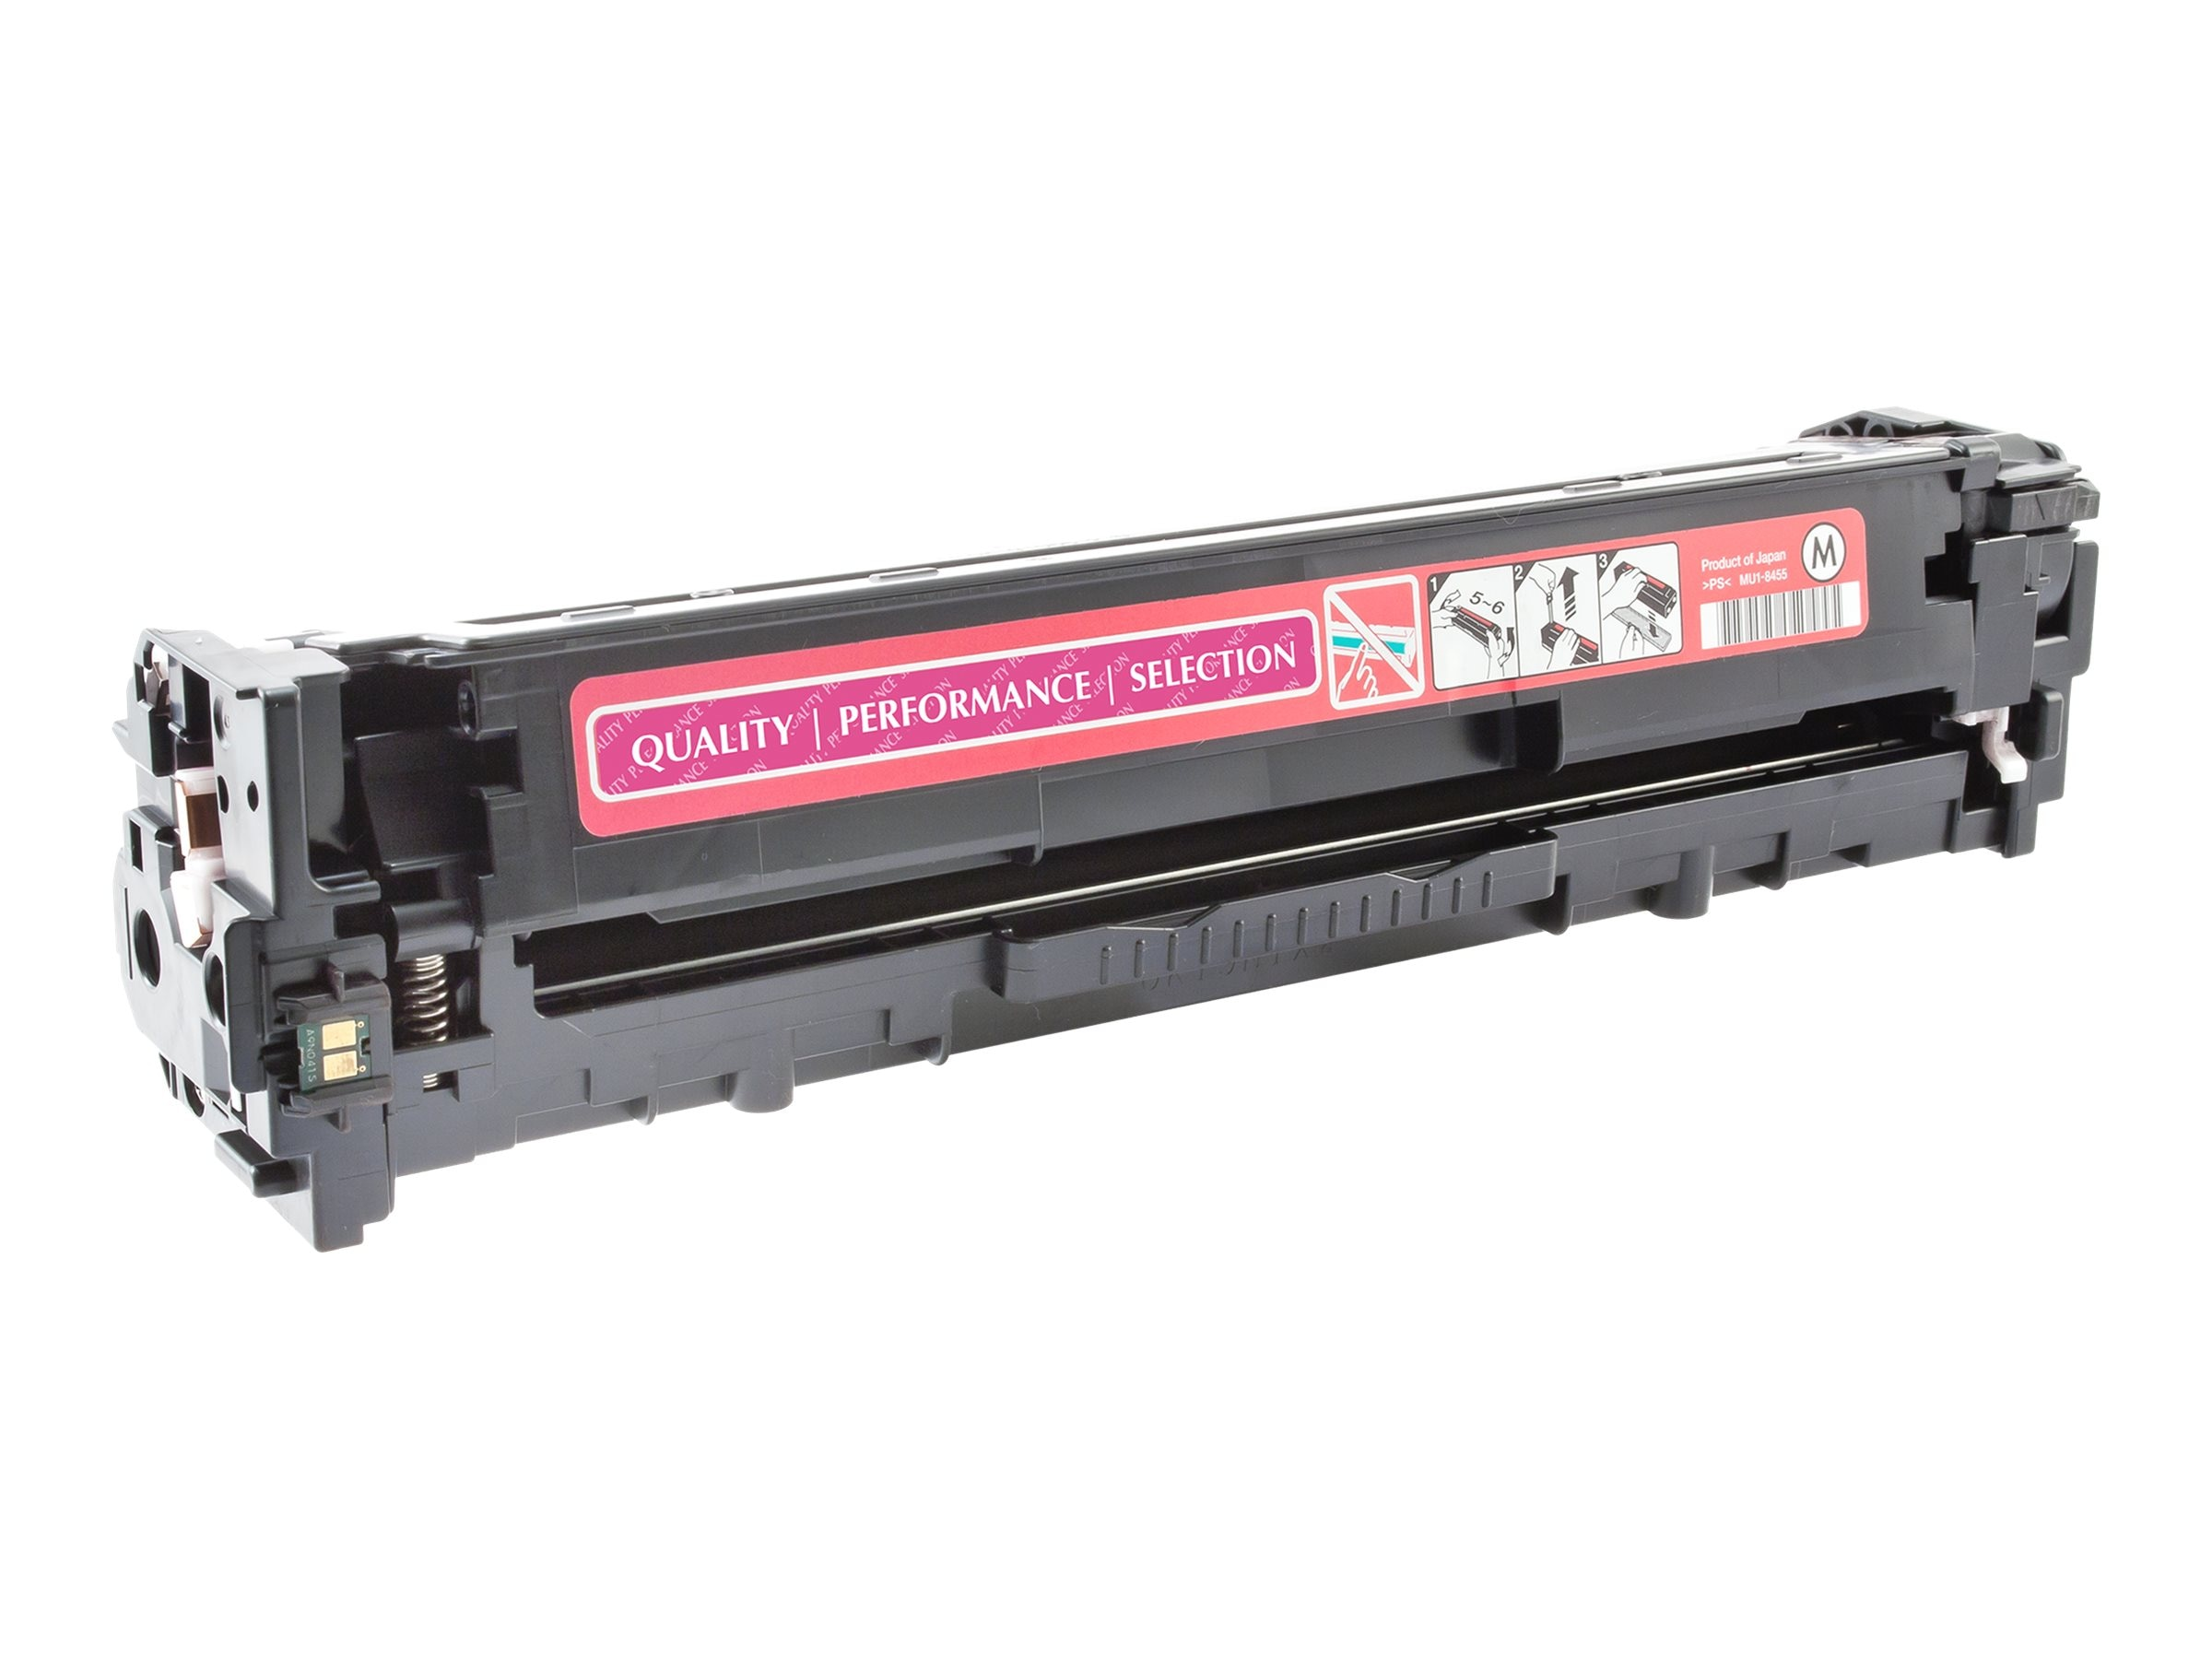 V7 CE323AG Magenta Toner Cartridge for HP Color LaserJet Pro CM1415 & CP1525